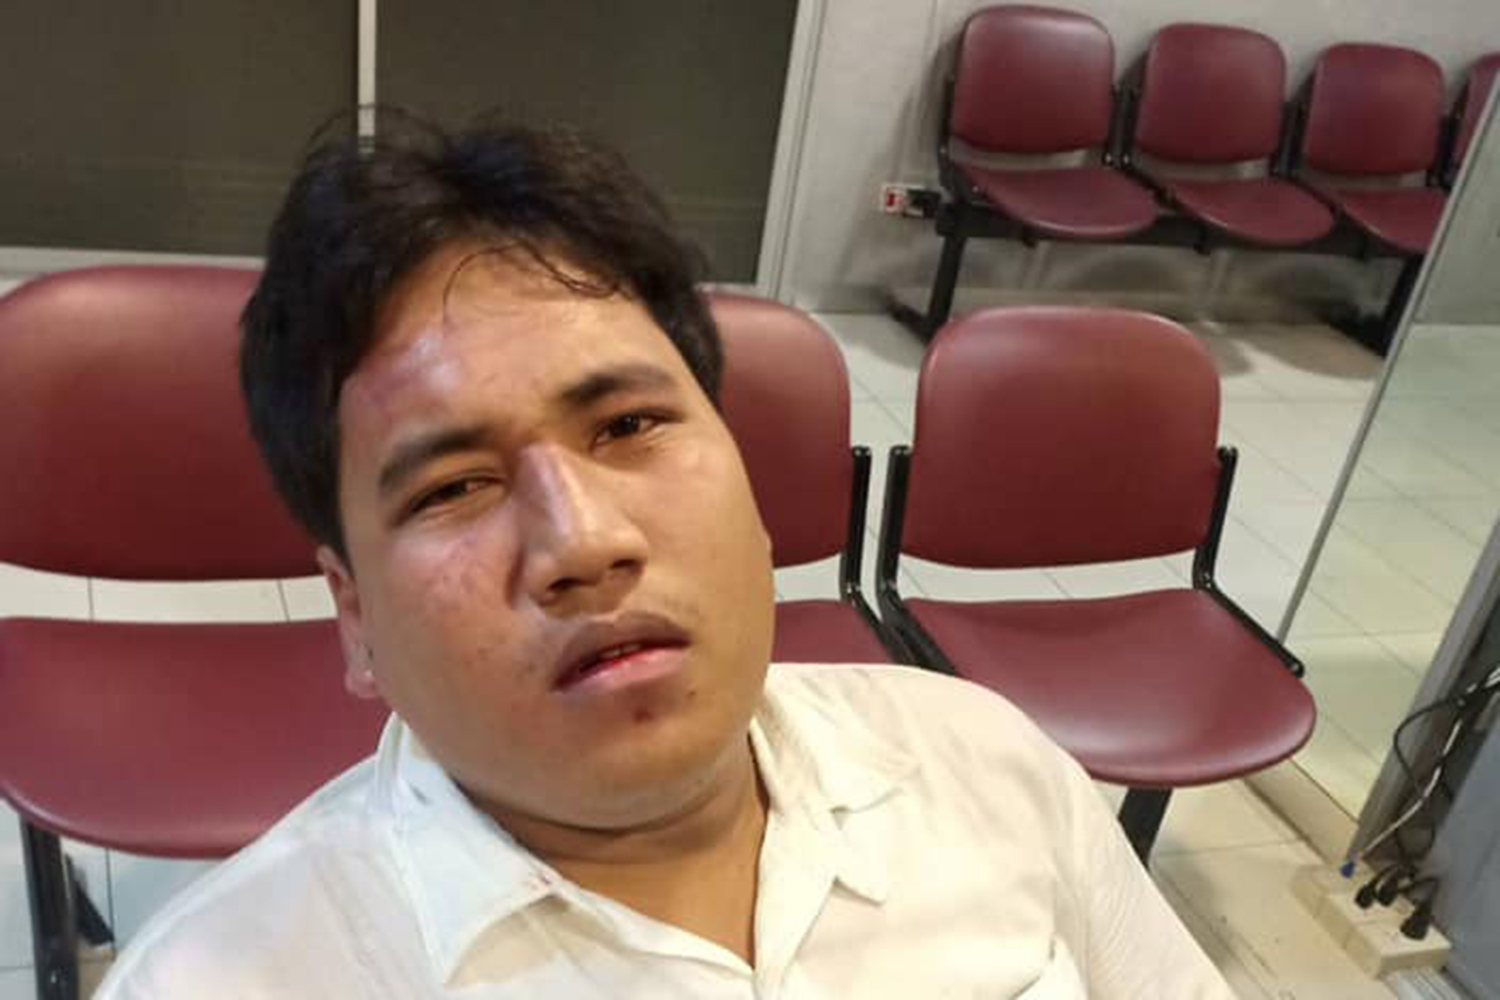 Political activist Sirawith Seritiwat registers an attack against him at the Huay Kwang police station. (Photo from Bow Nuttaa Mahattana Facebook account)